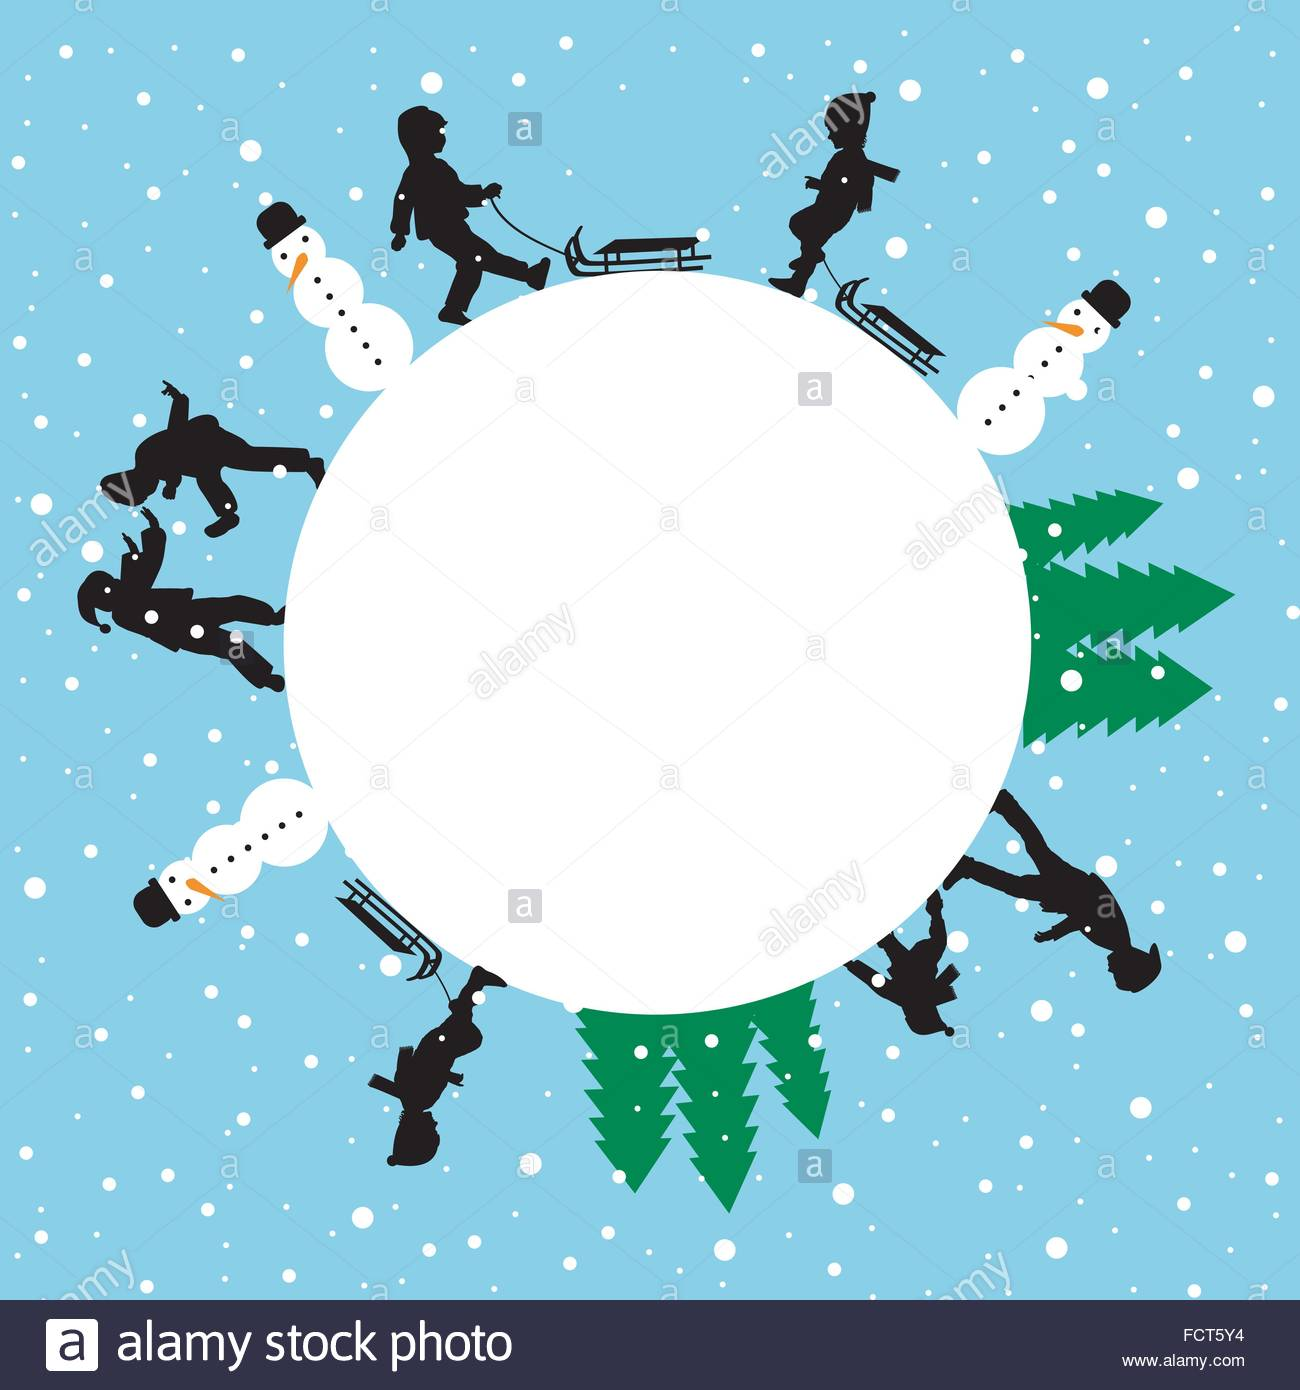 Winter round card with silhouettes of children playing - Stock Vector